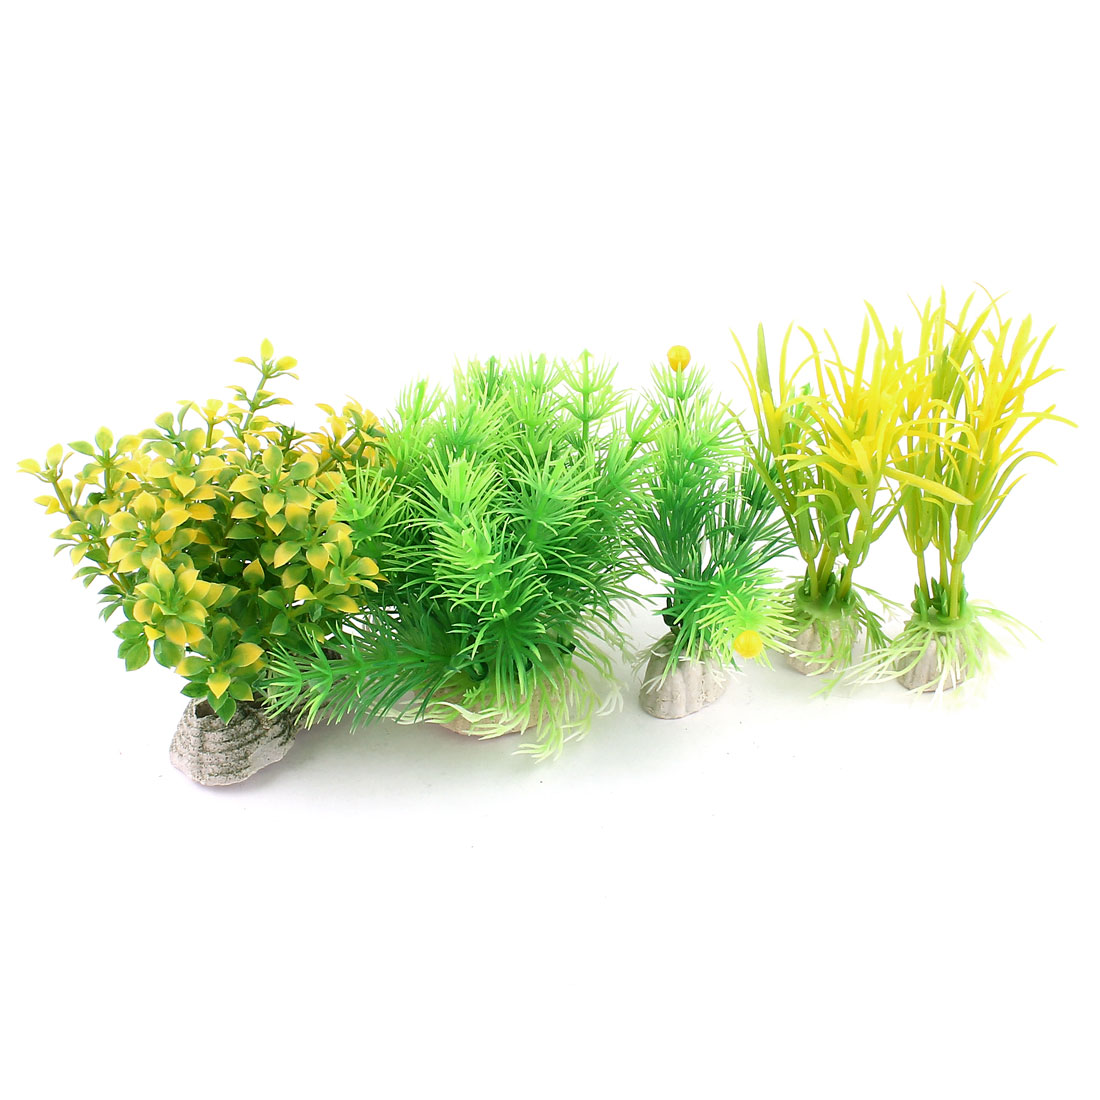 Aquarium 7cm High Green Pine Tree Yellow Artificial Water Plants Decor 5 In 1